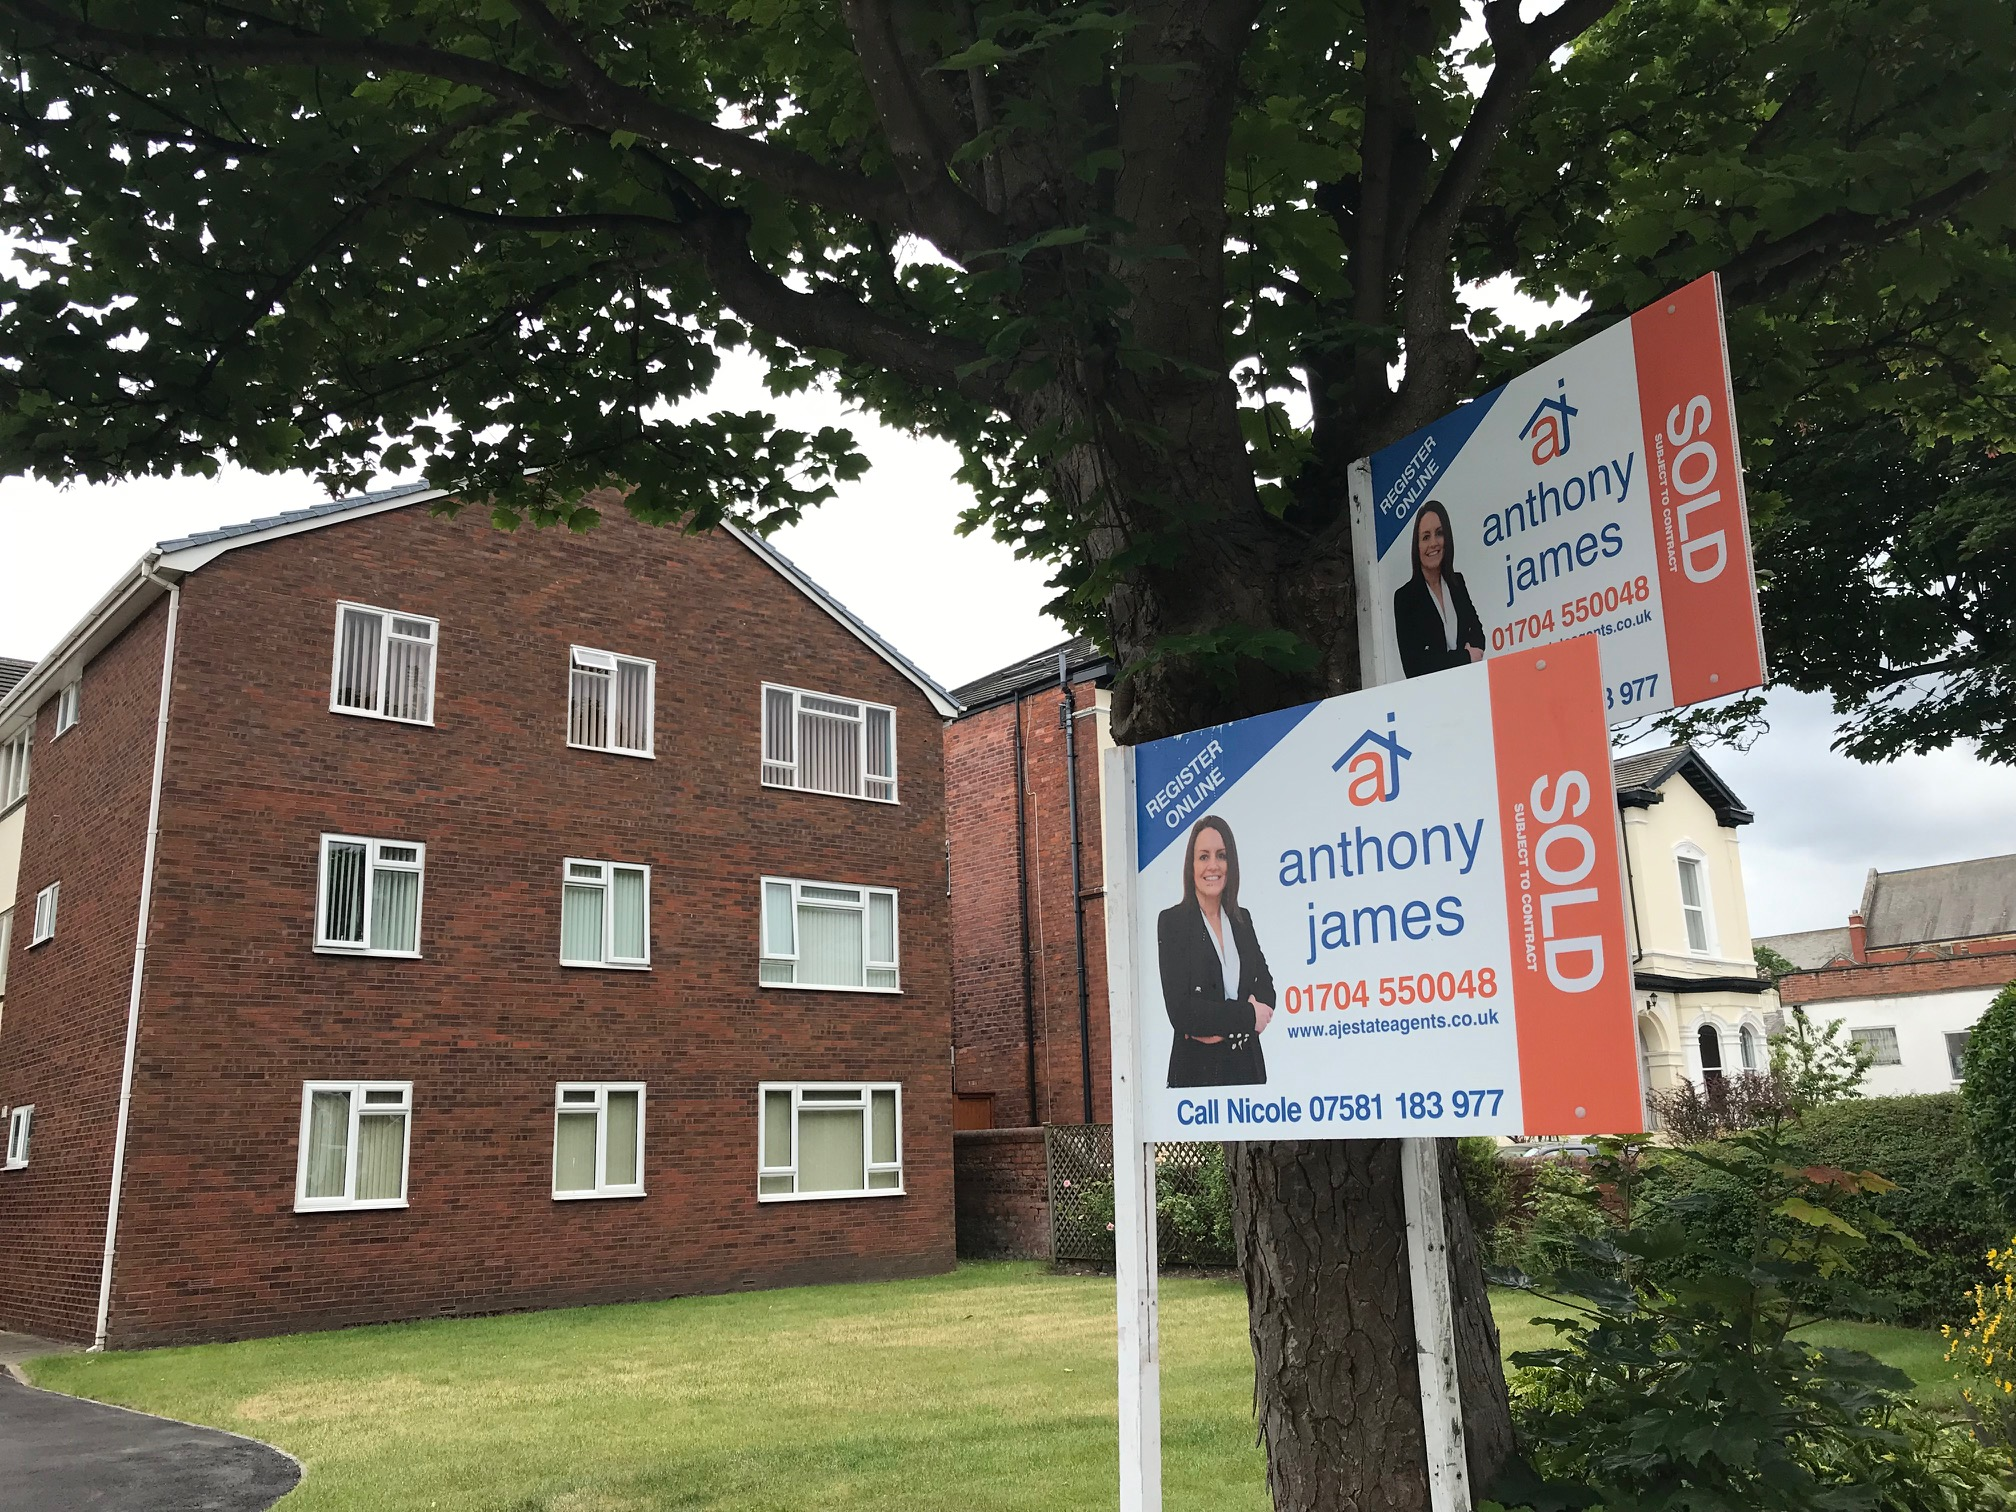 Nicole Trowell is one of the Associate Partners for Anthony James Estate Agents in Southport whose faces feature on their For Sale and Sold boards